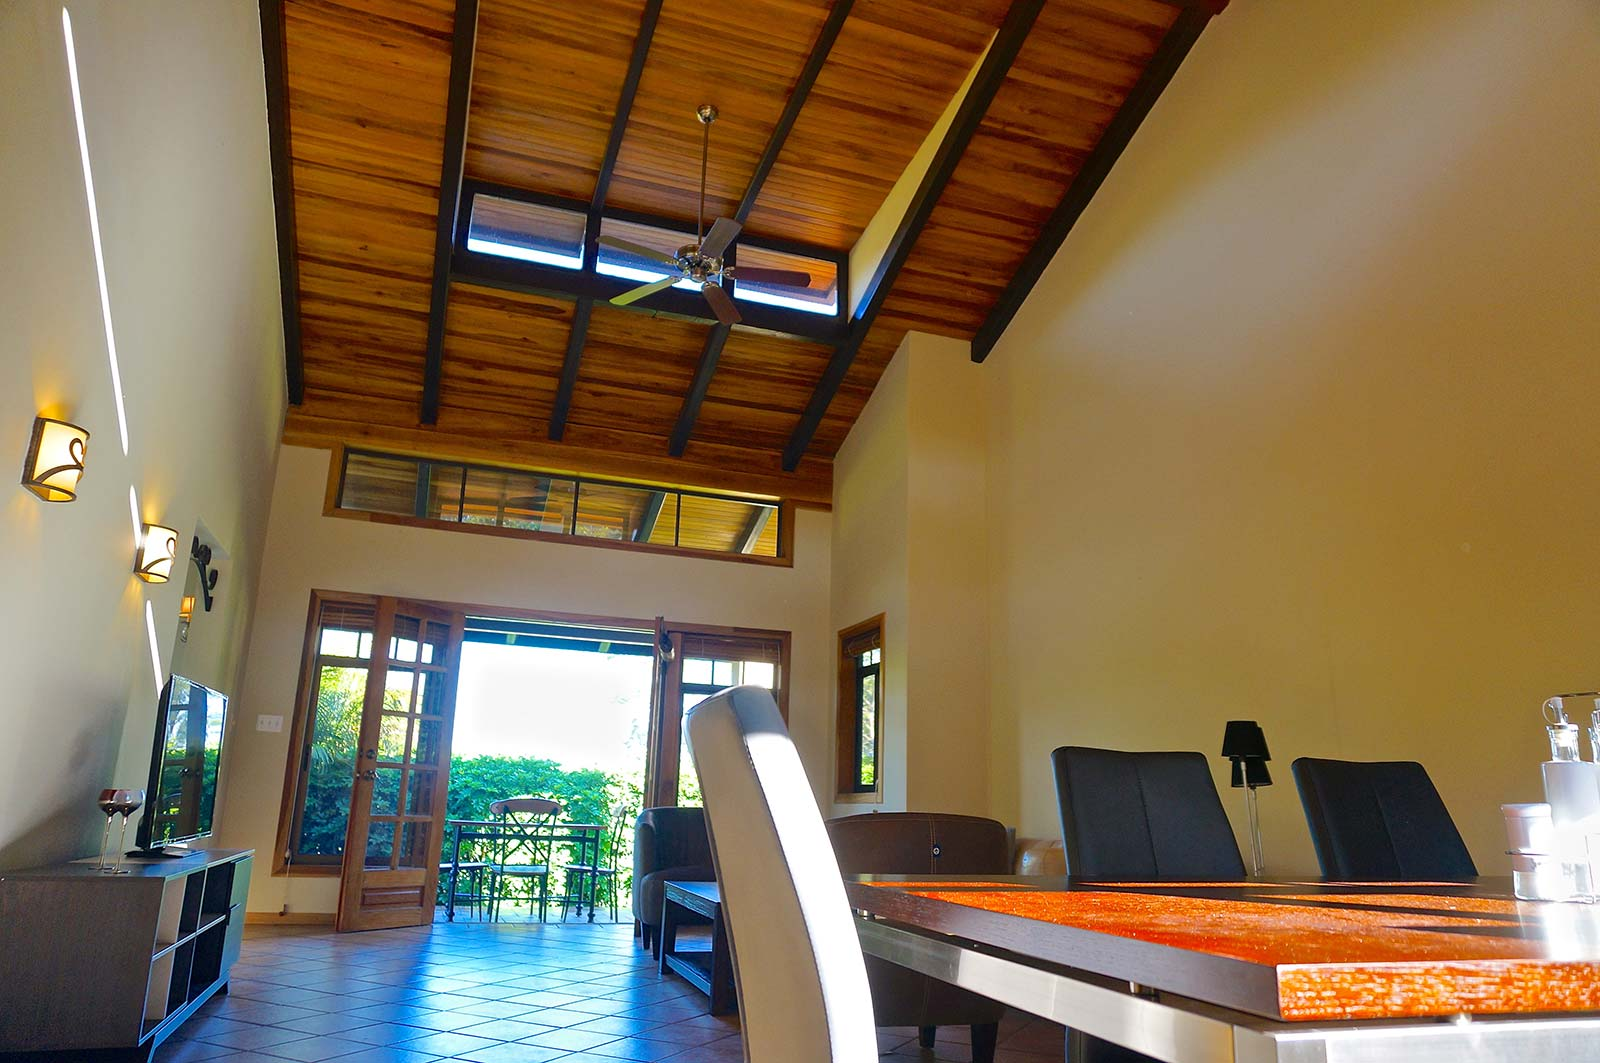 Santa Ana, Costa Rica, Rental, One Story, Home, One Level, House, for rent, gated community, mountain views, city lights